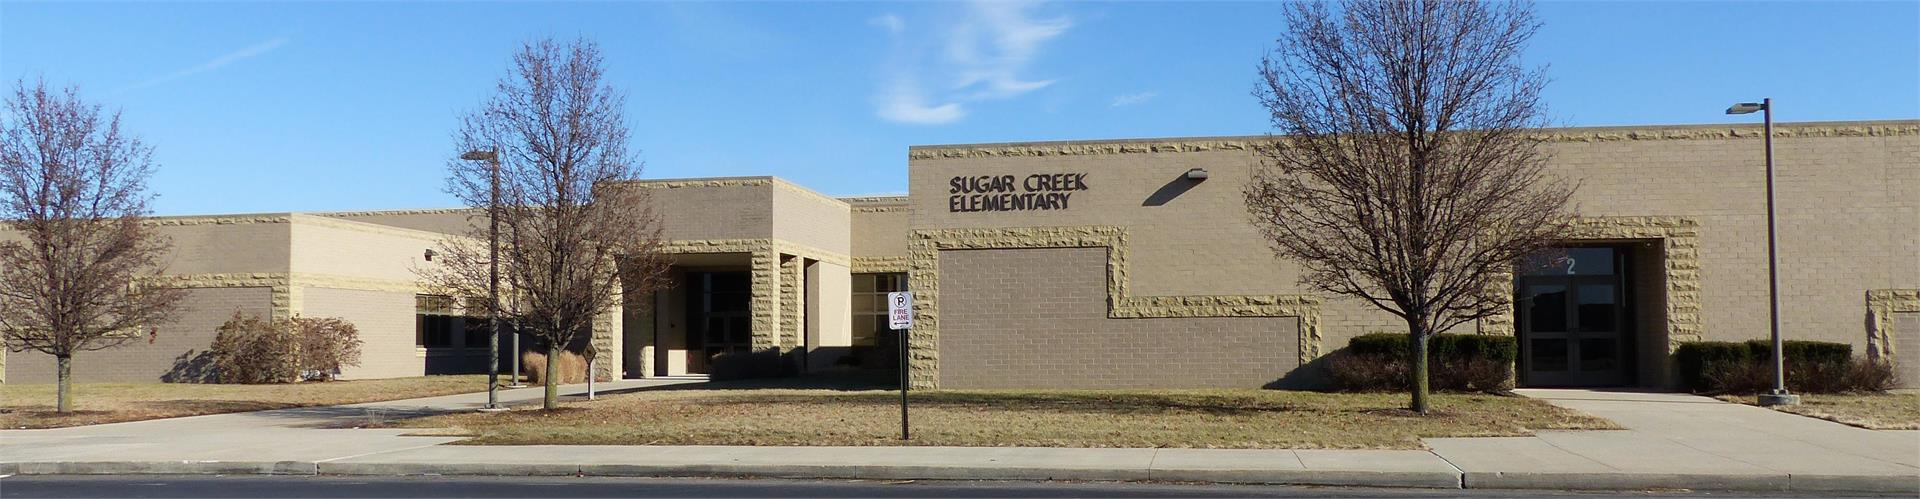 Sugar Creek Elementary School